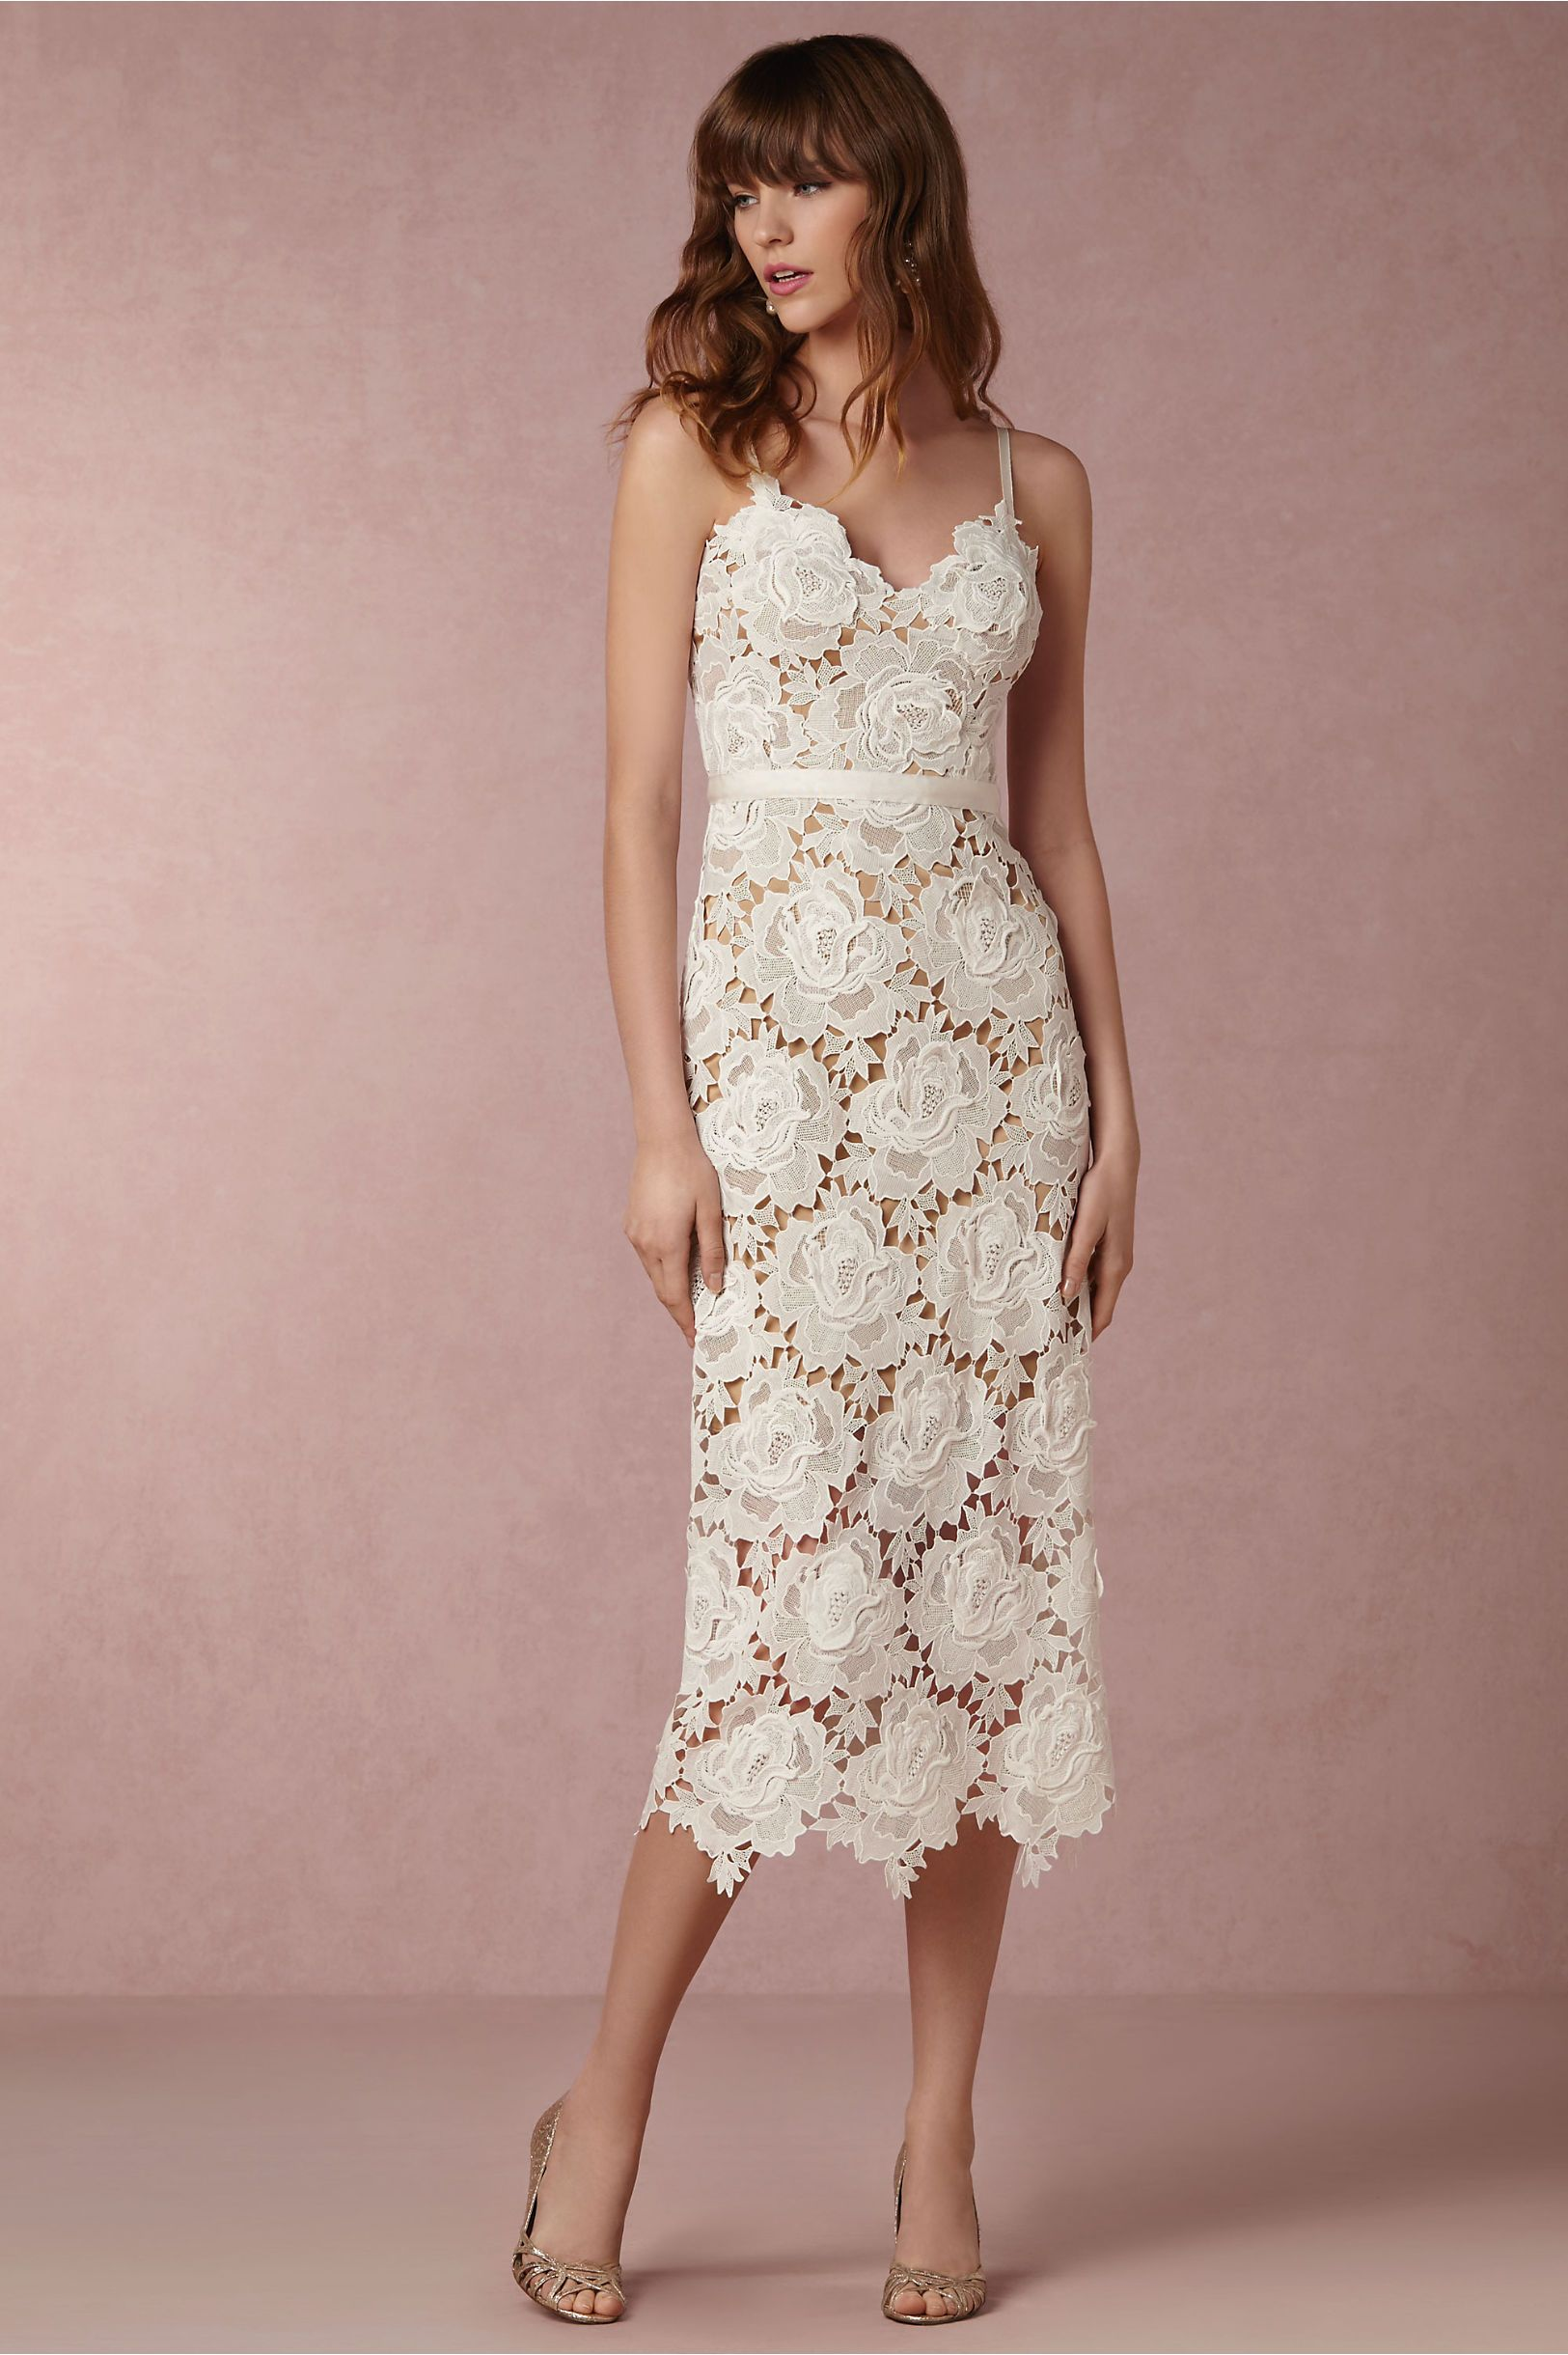 BHLDN Frida Dress in Bride Reception & Rehearsal Dresses at BHLDN ...